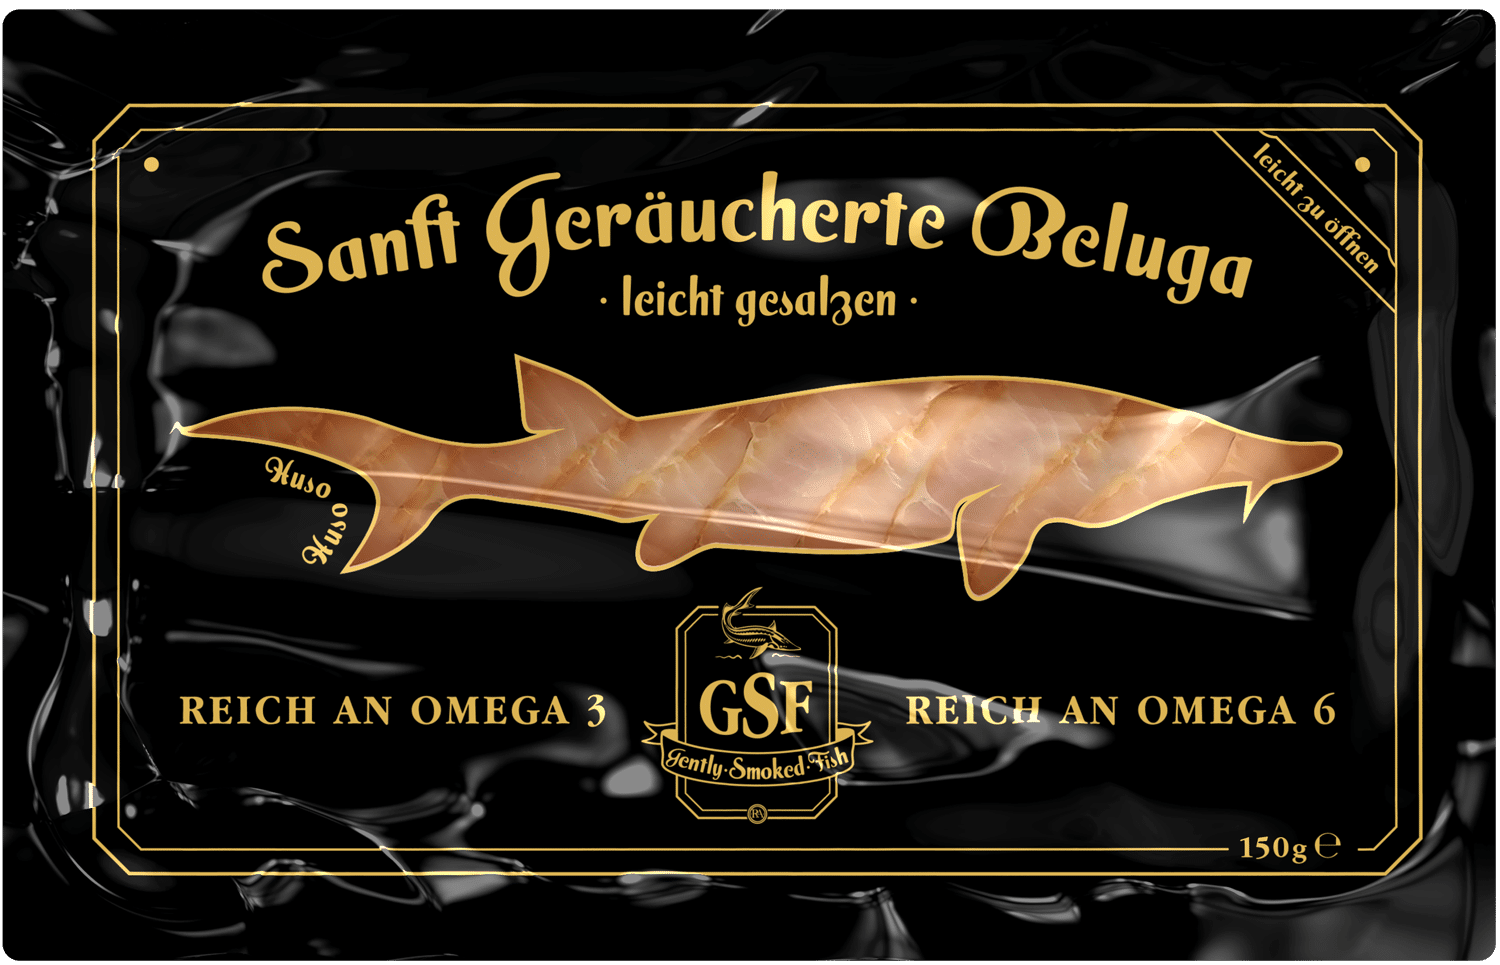 Smoked Beluga Fish Vacuum Packaging Design